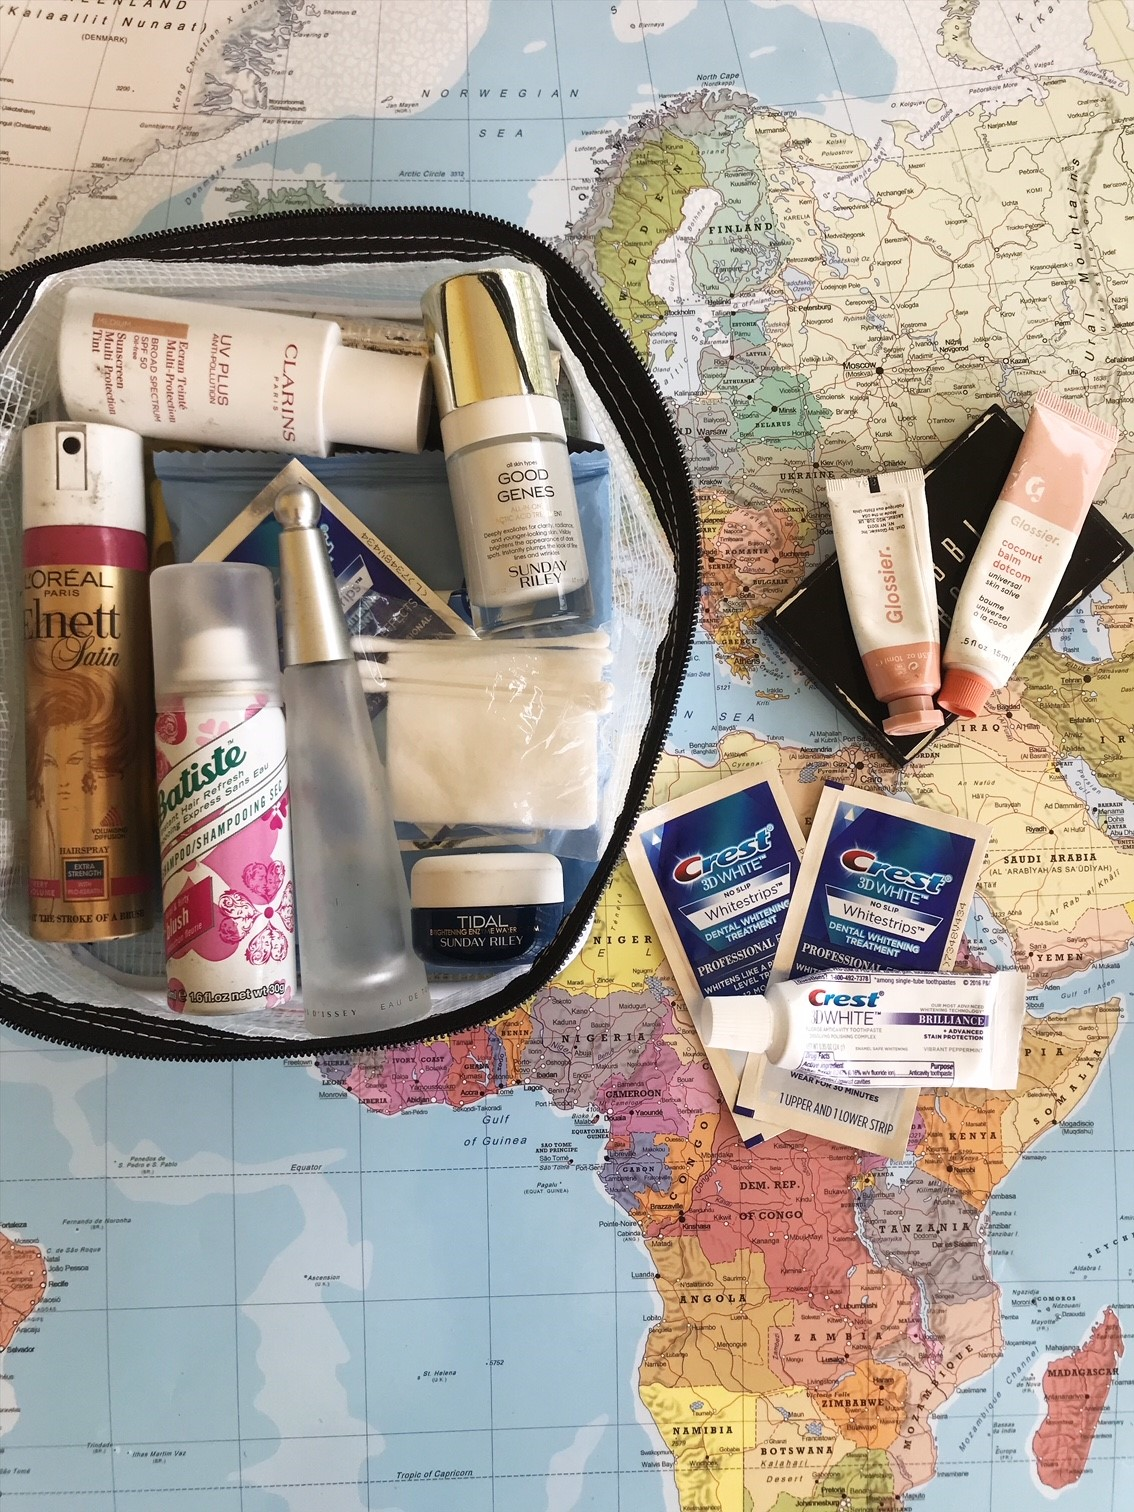 Traveling with only your carry-on. The Barefoot Angel shares her 7 golden rules to help minimize your luggage and maximize your travel experience.